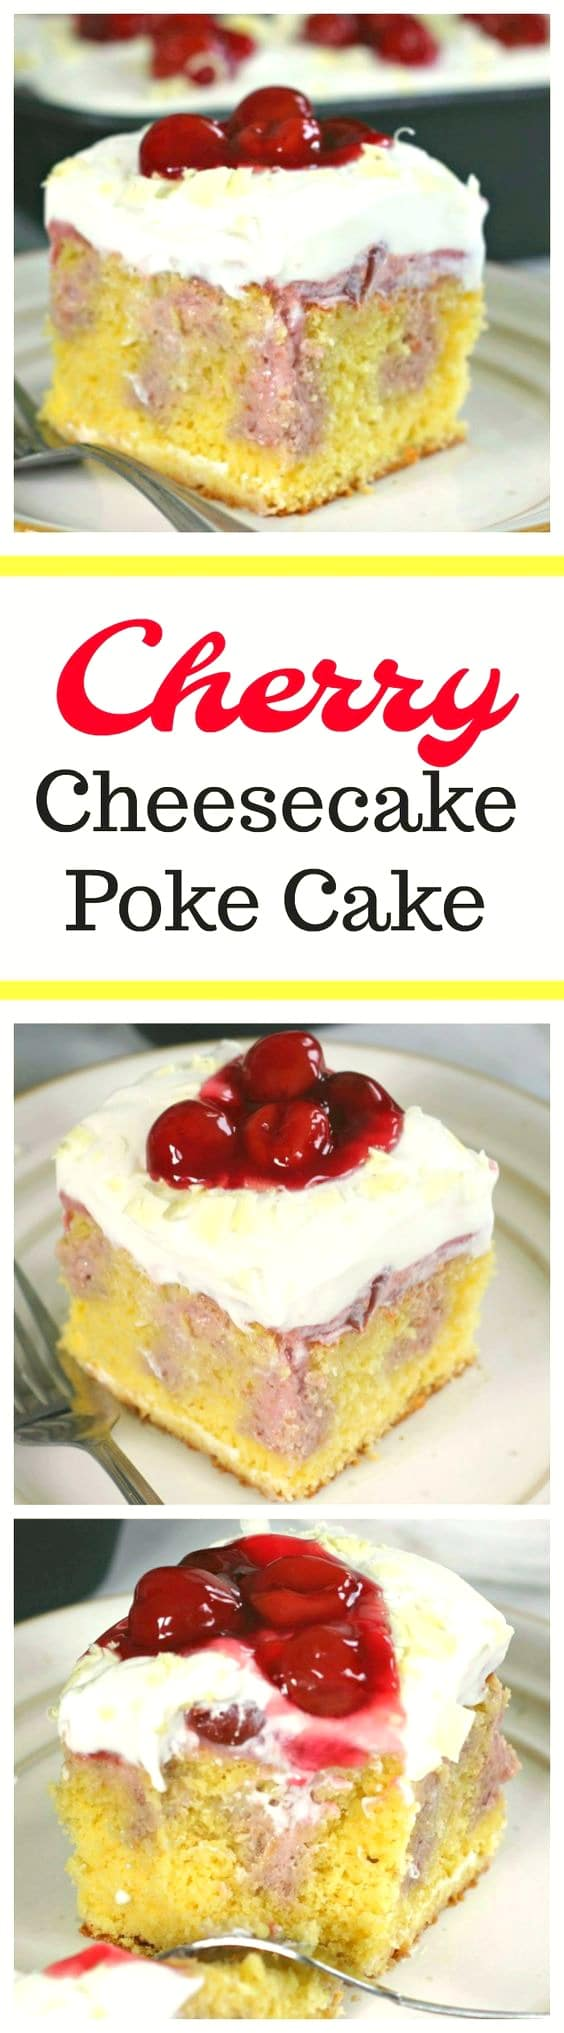 Very Cherry Cheesecake Poke Cake. Savor every luscious bite of this delectable Very Cherry Cheesecake Poke Cake!  The yellow cake is filled with tempting cherry cheesecake filling, cream cheese whipped cream and more surplus cherry yumminess on top!  I ask you...Does it get any better than this?